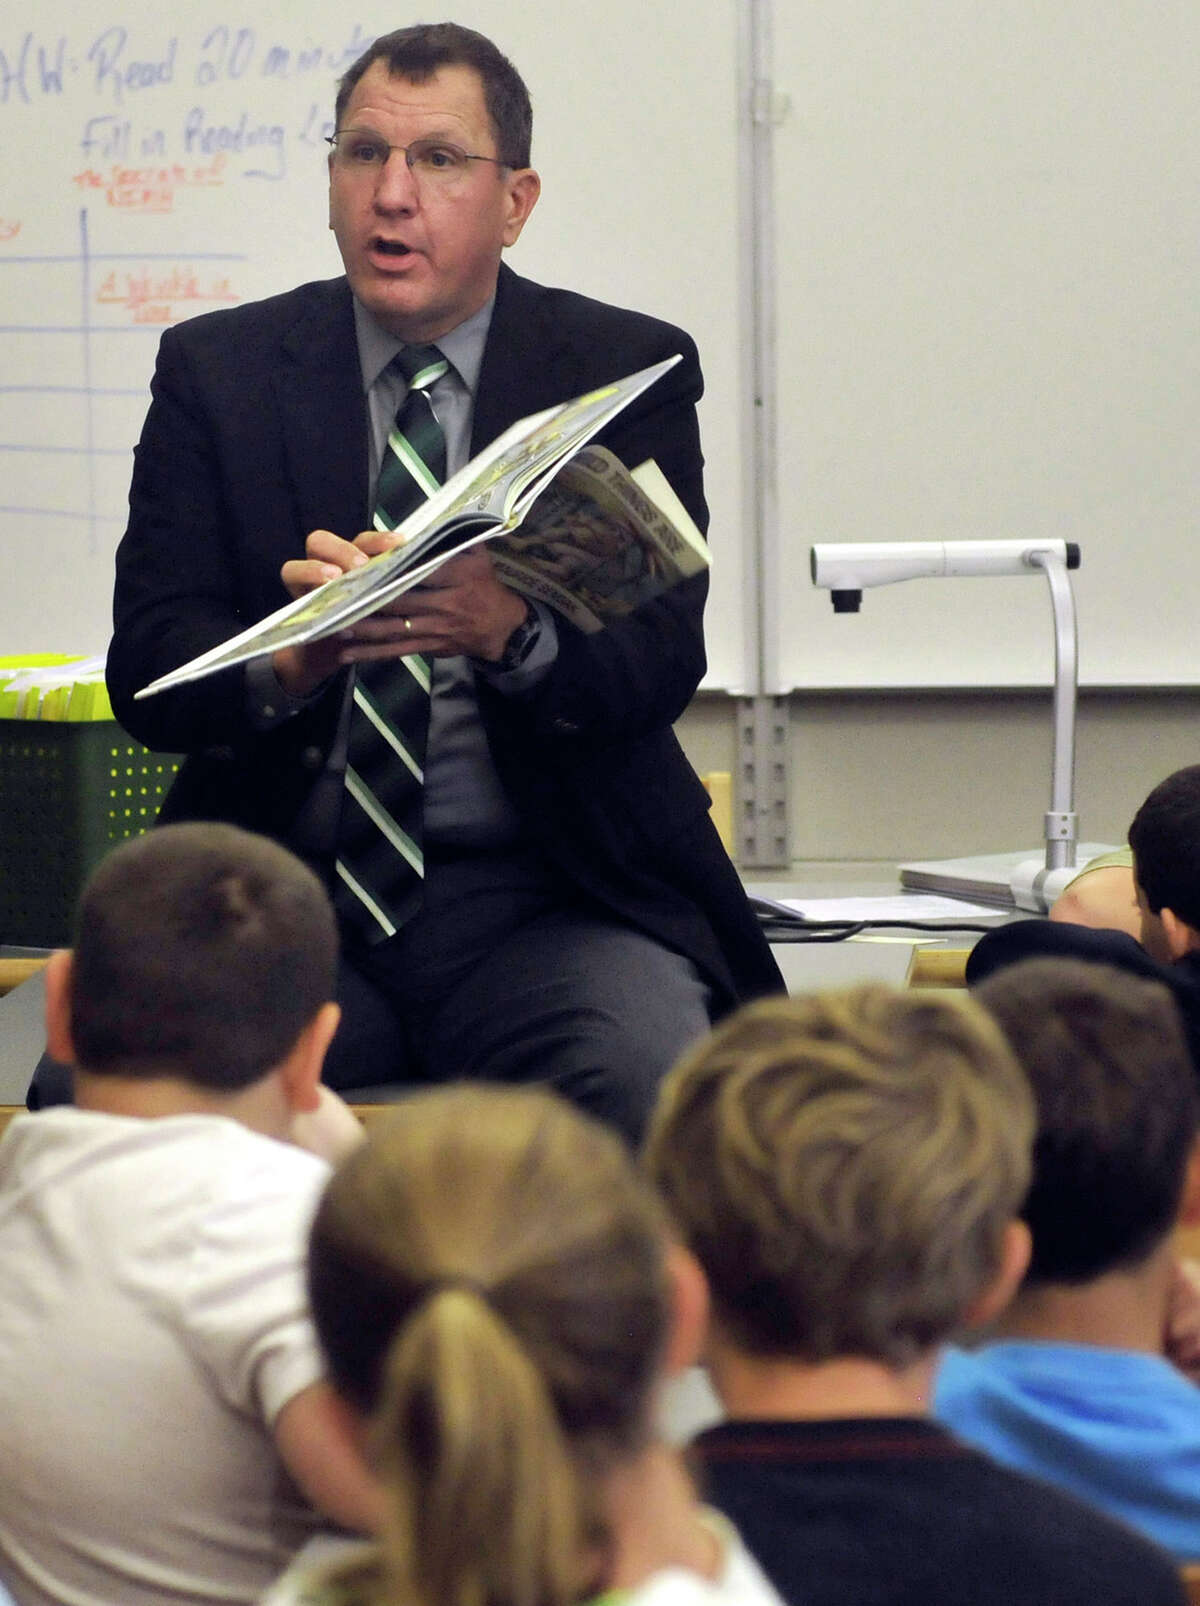 Tuscarora School District Superintendent Dr. Charles Prijatelj reads during International Literacy Day Monday, Sept. 8, 2014 at James Buchanan Middle School, in Mercersburg, Pa. (AP Photo/Public Opinion, Markell DeLoatch)